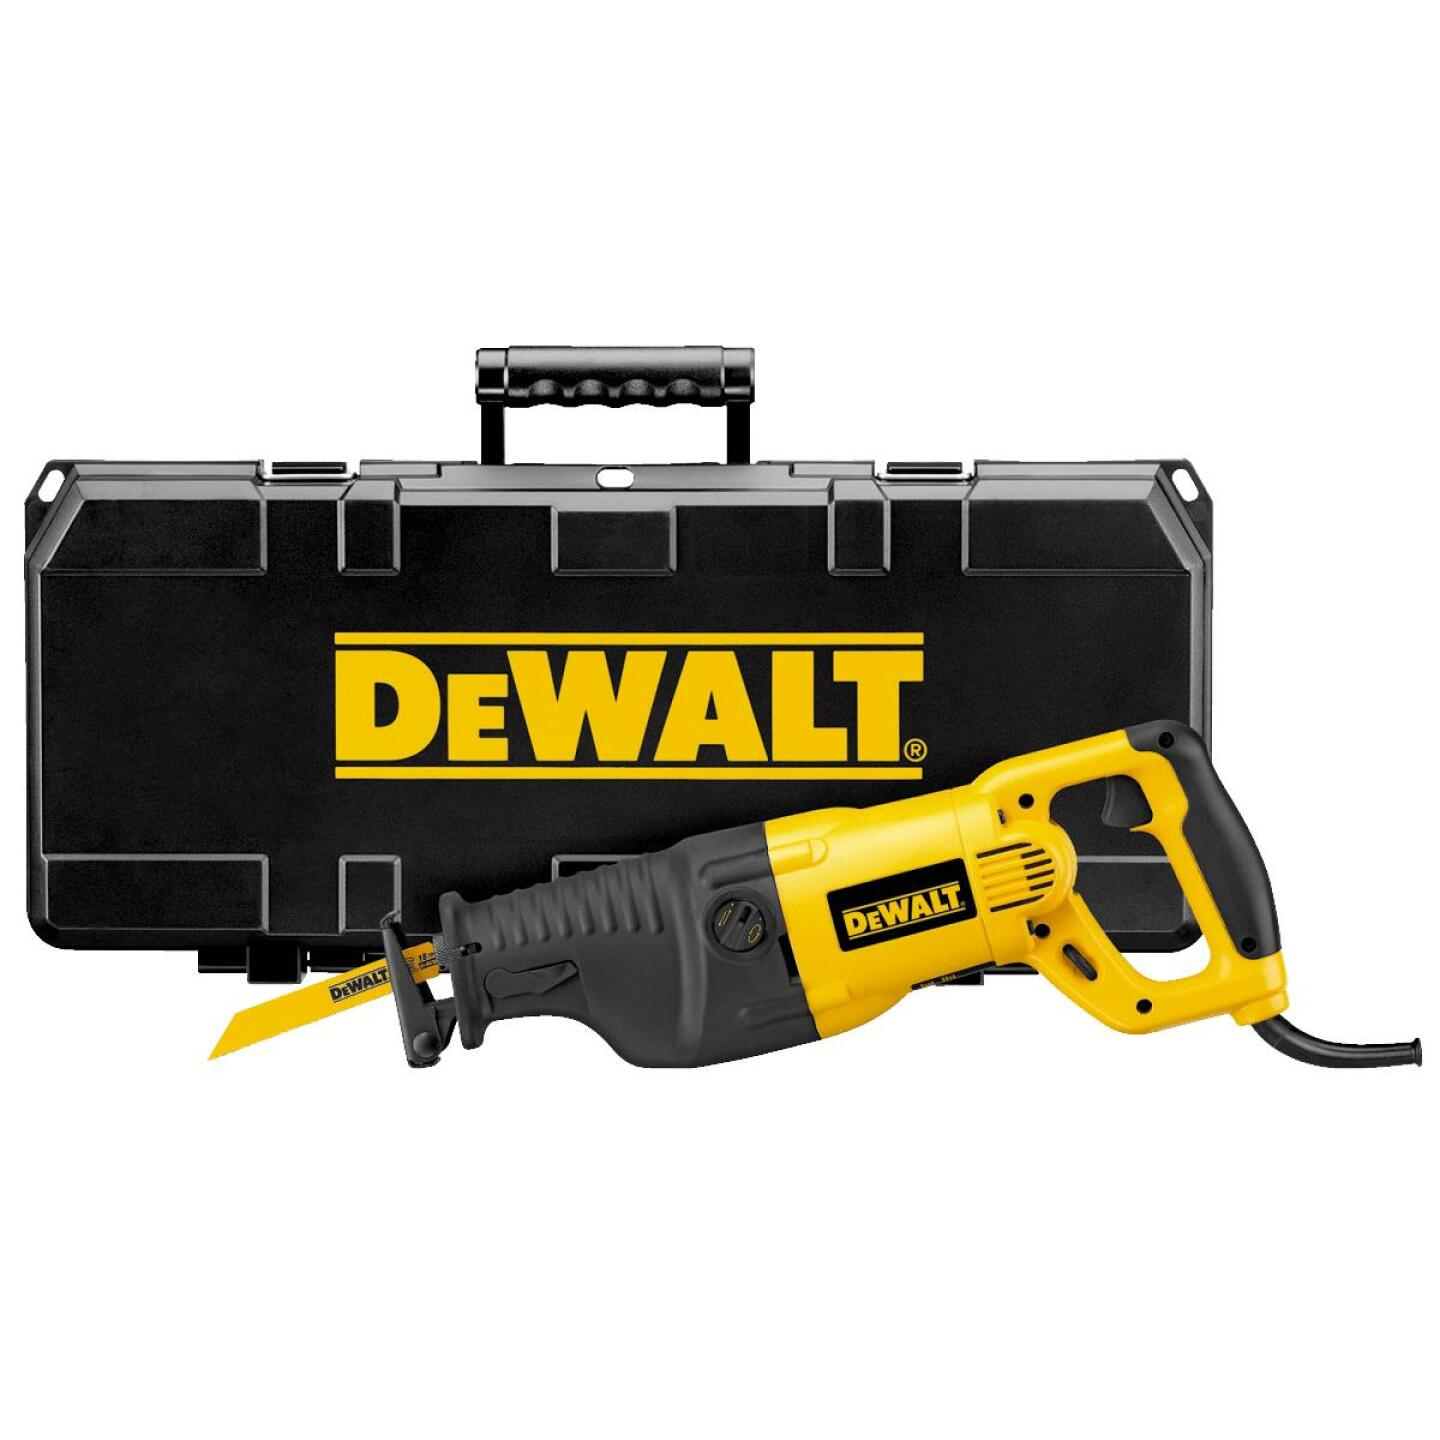 DeWalt 13-Amp Reciprocating Saw Kit Image 1